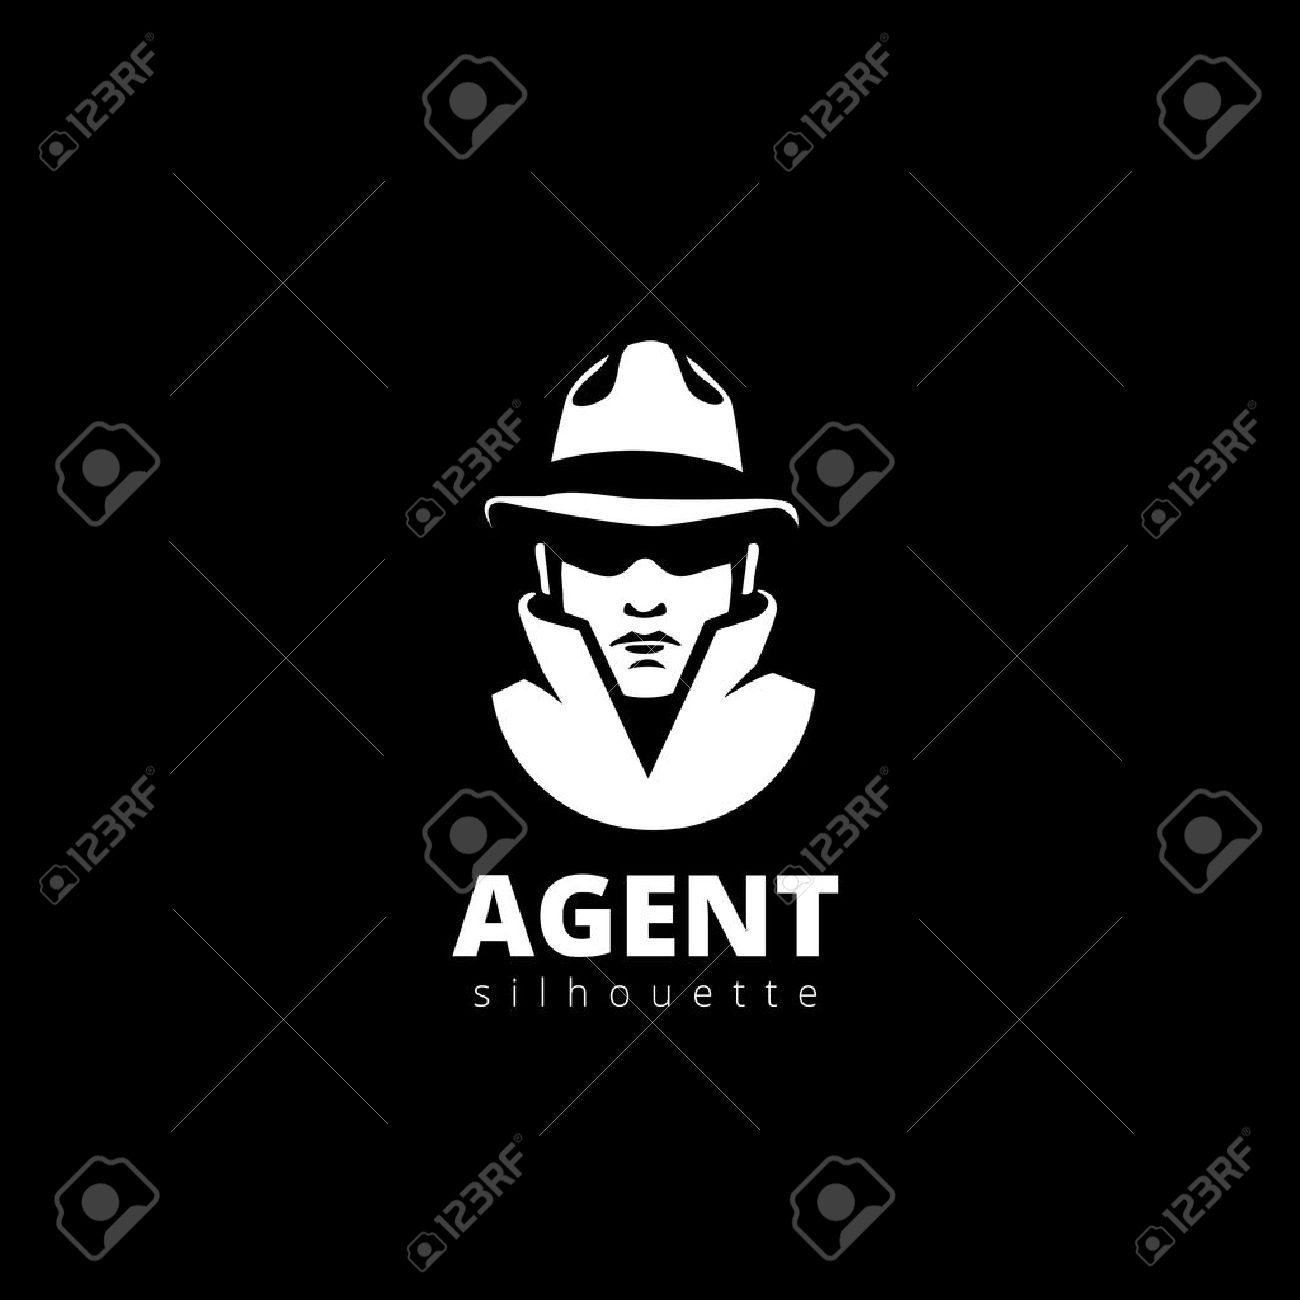 agent head silhouette logo design vector template detective royalty free cliparts vectors and stock illustration image 45457245 agent head silhouette logo design vector template detective